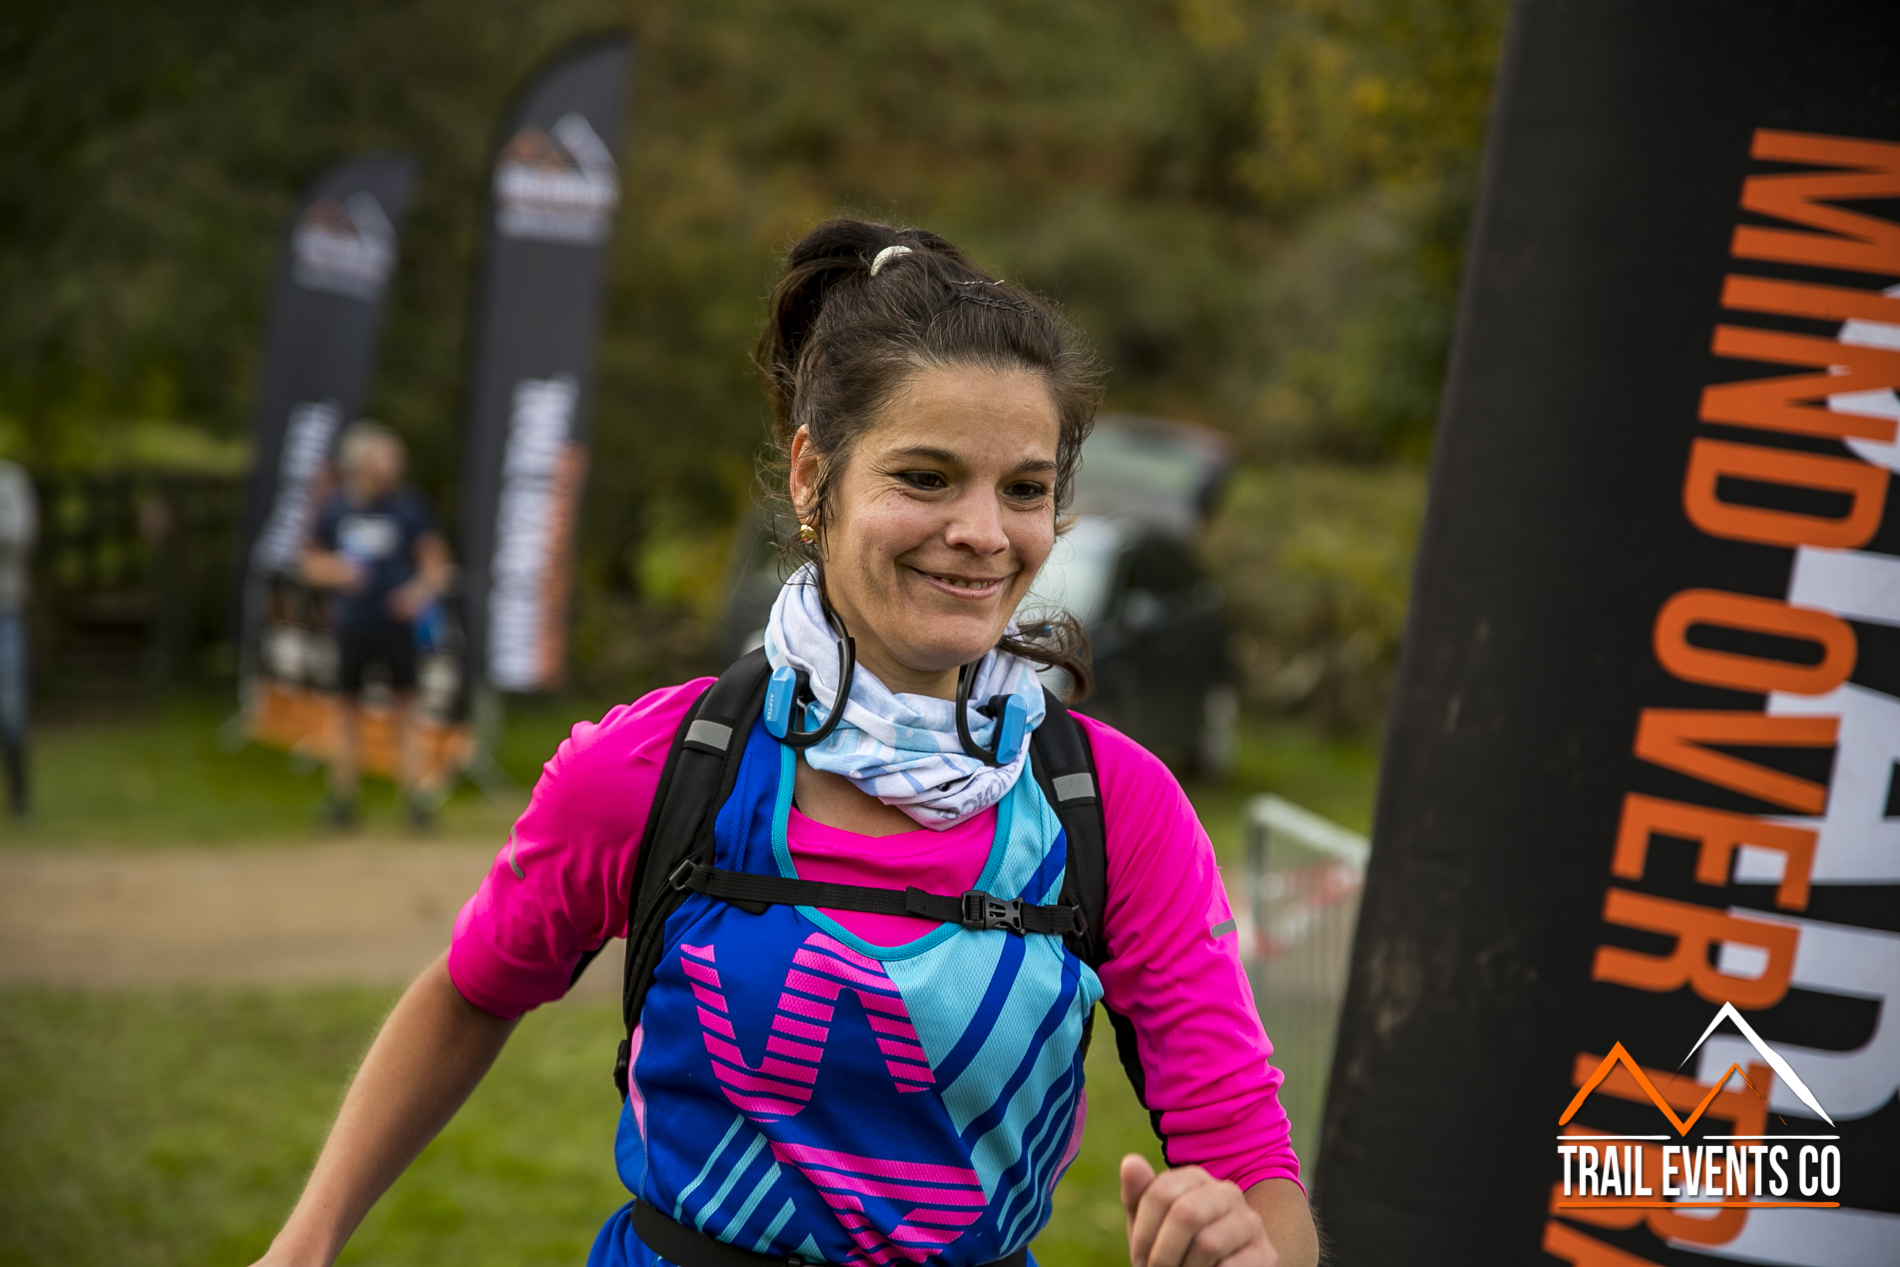 Lulworth Cove Trail Running Challenge 2021 Day 2- Reverse Direction - Trail Events Co